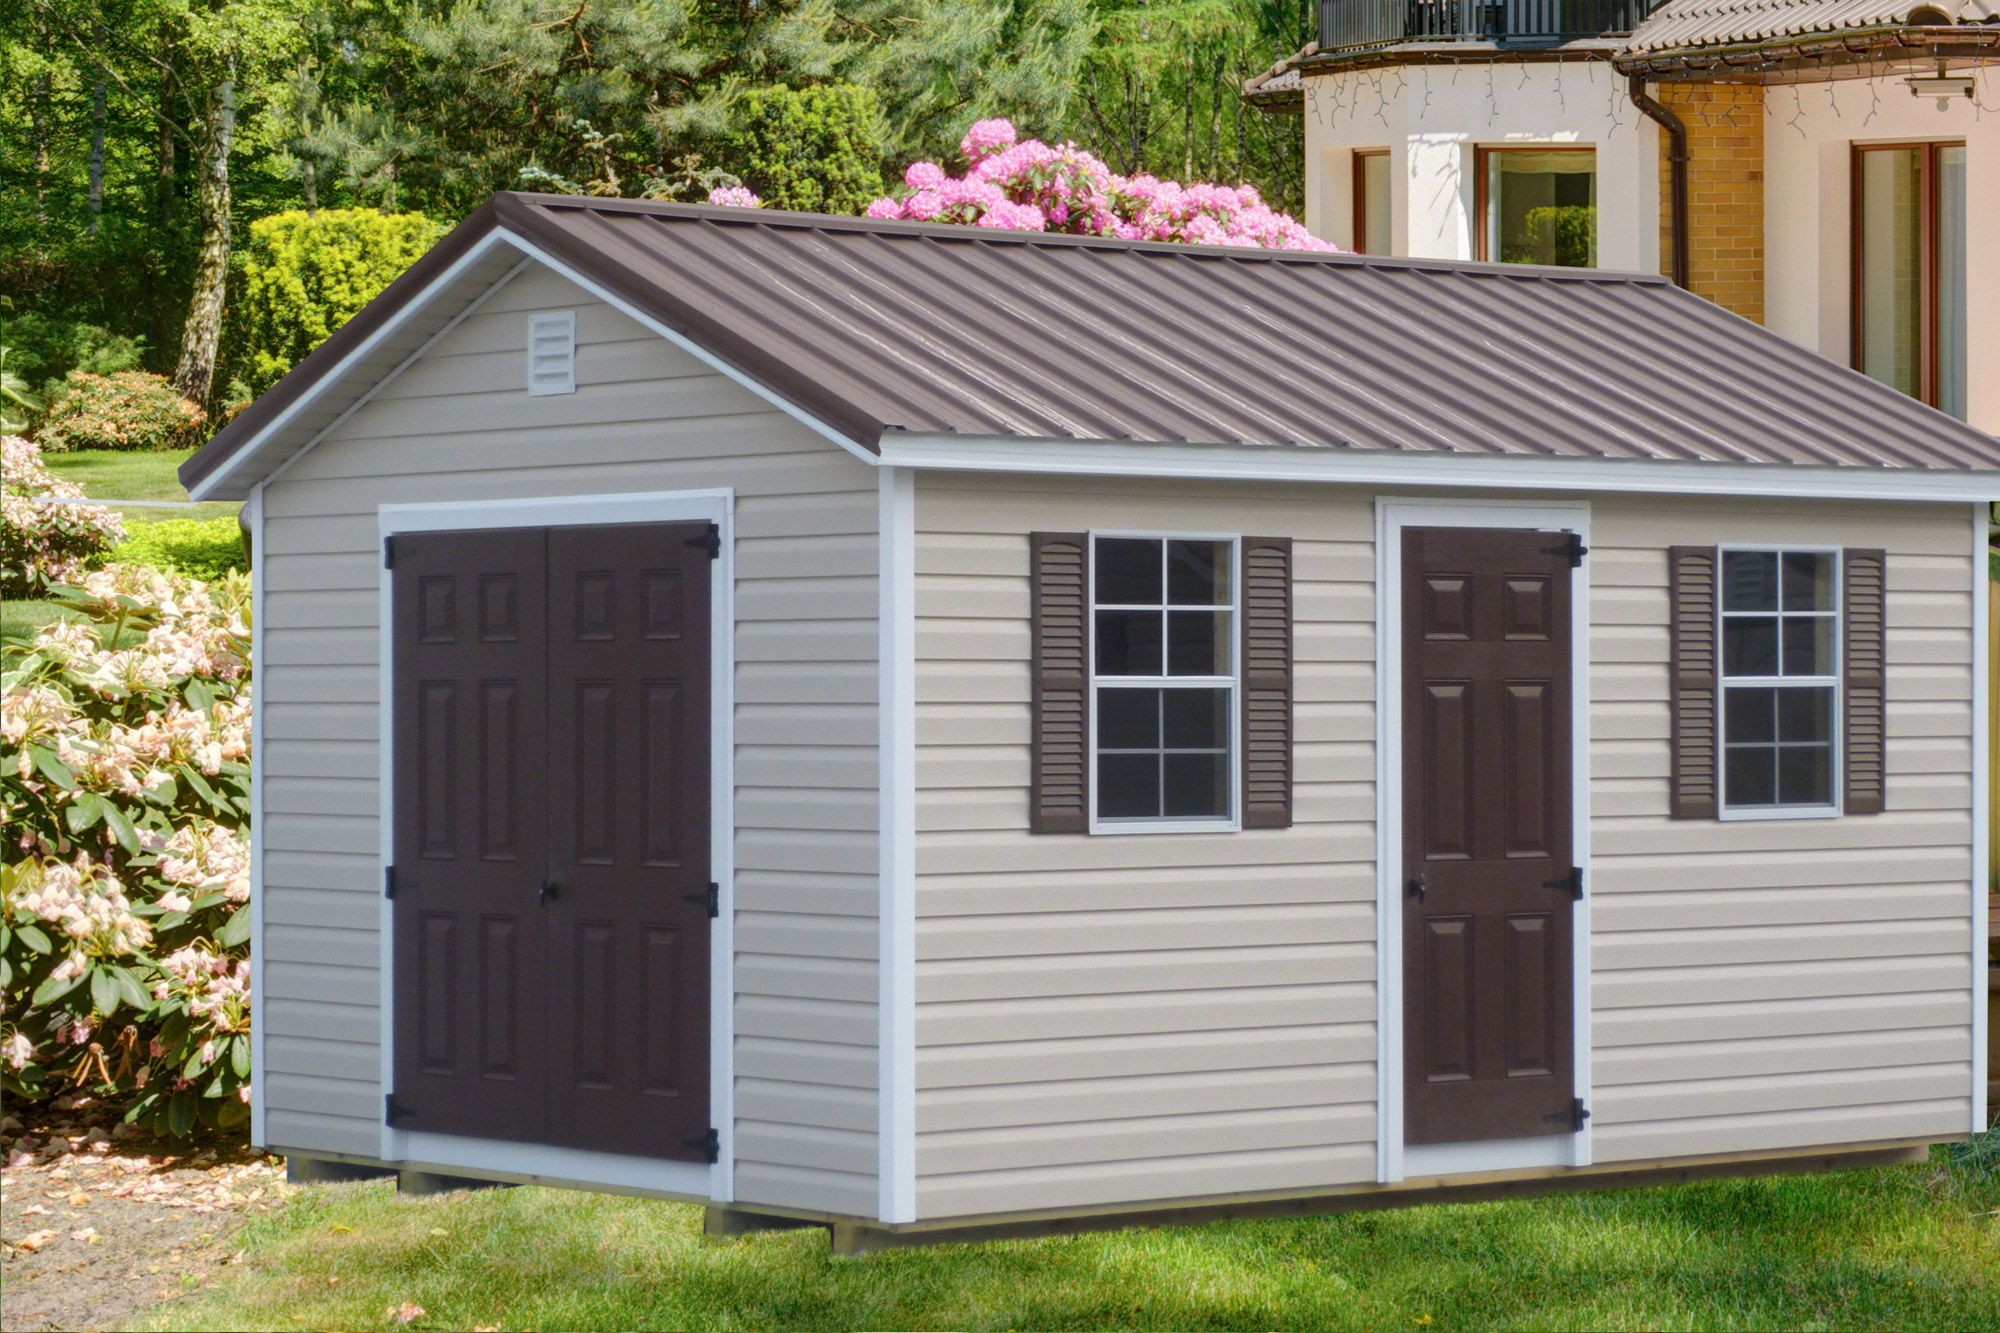 outdoors com gable lowes at lifetime outdoor sheds resin storage common x shop ft vinyl pl shed products